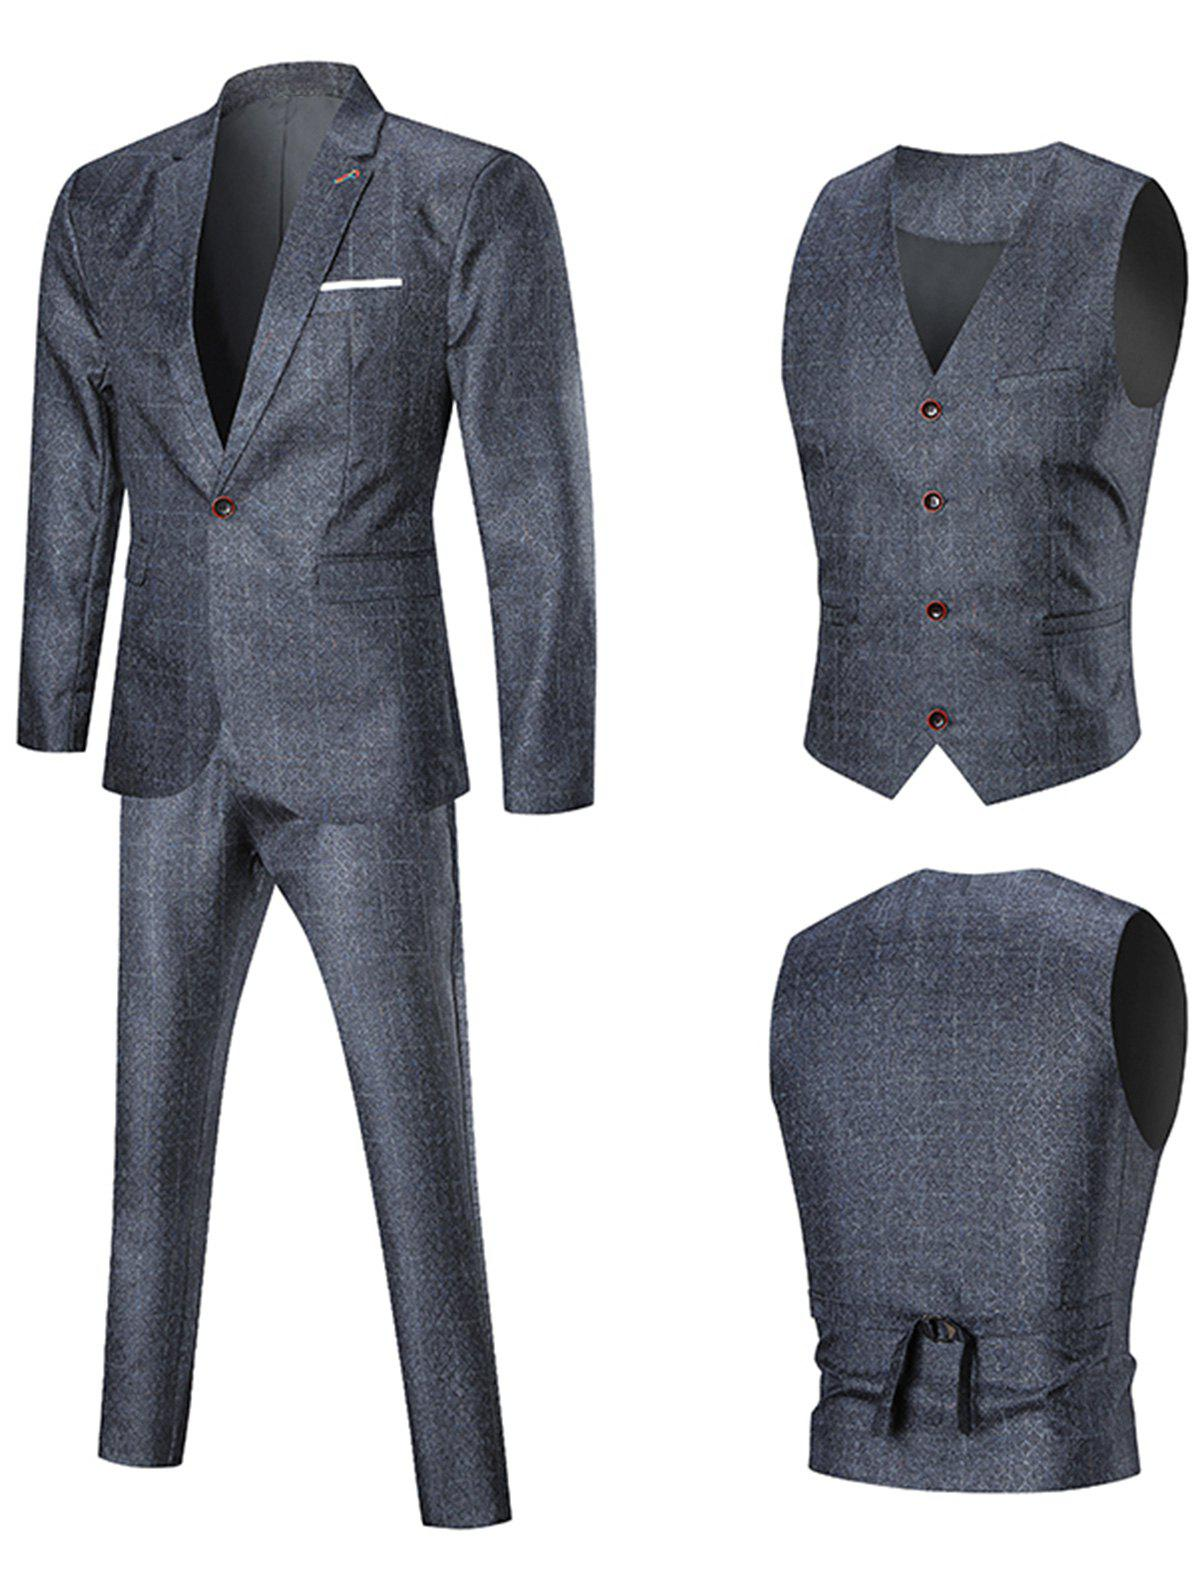 Argyle One Button Three Piece Business Suit - PEARL DARK GREY 4XL